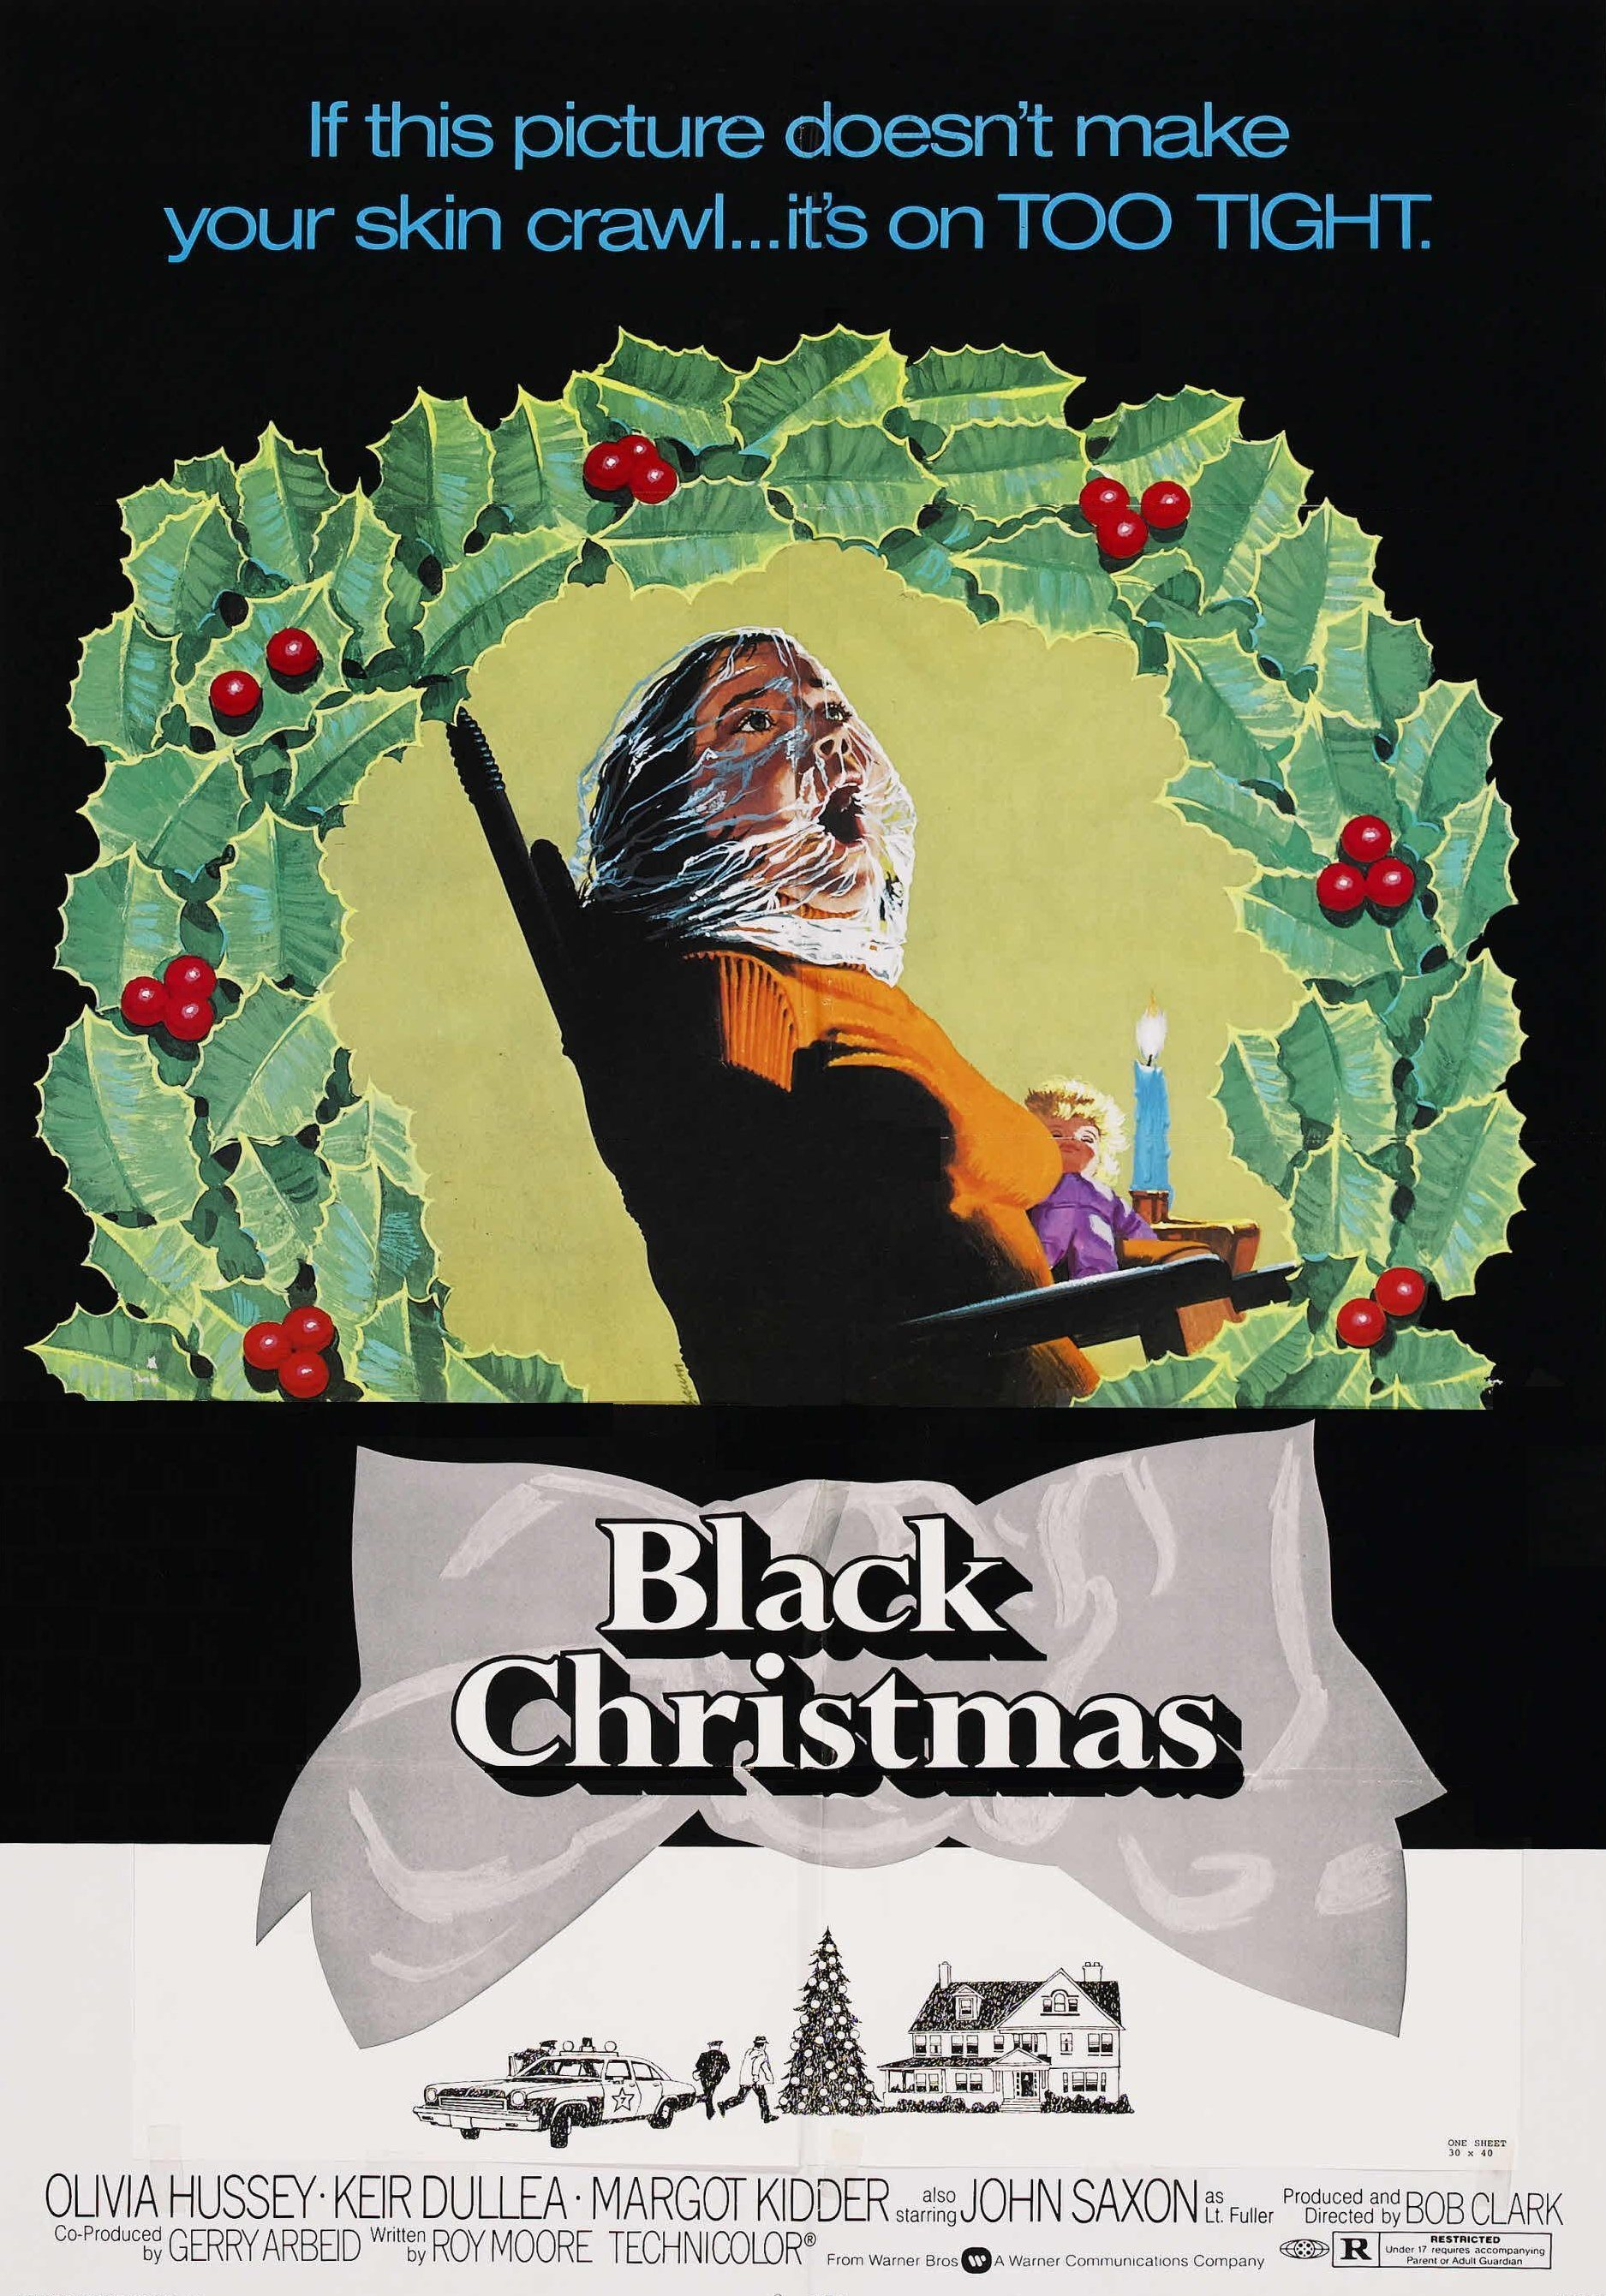 Black Christmas (original)